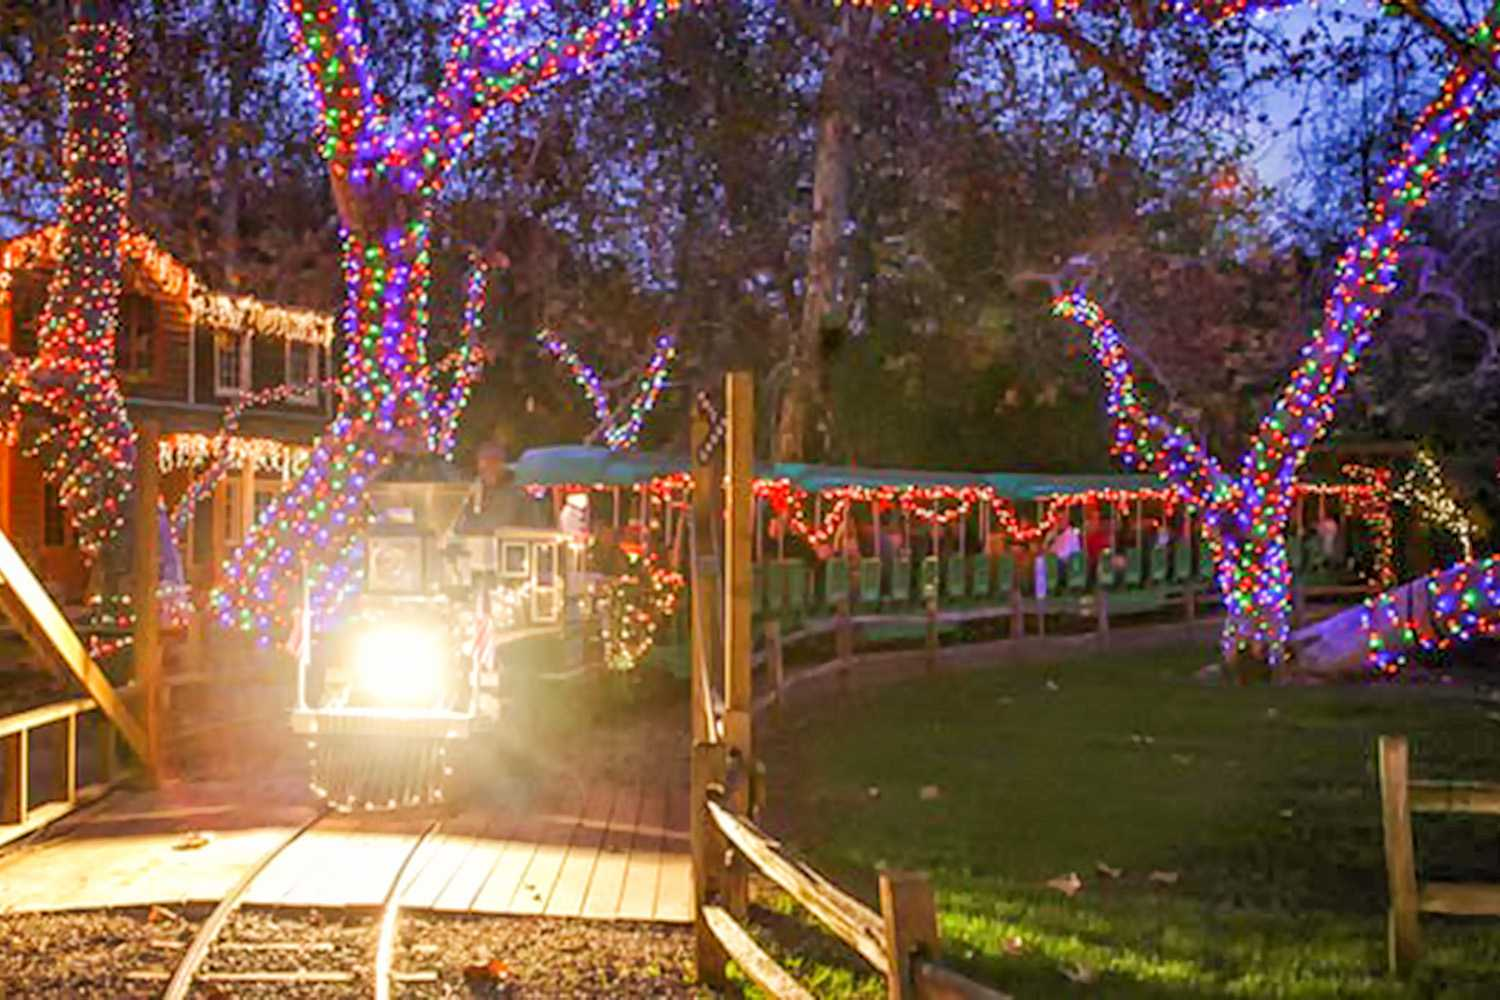 things to do for christmas in orange county - Balboa Park Christmas Lights